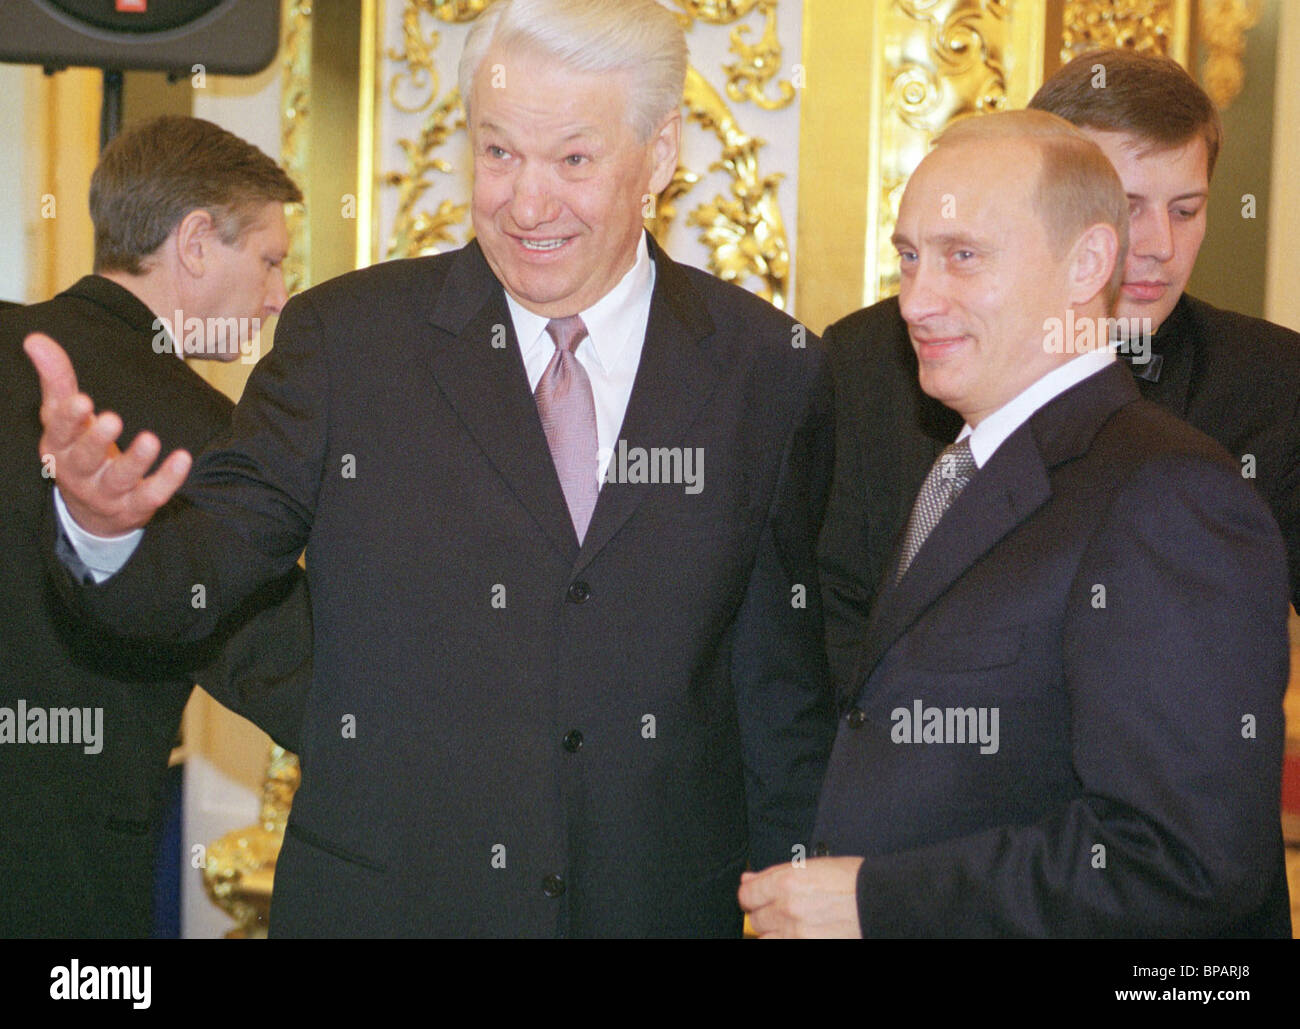 Putin and Yeltsin at the state reception in the Kremlin. - Stock Image